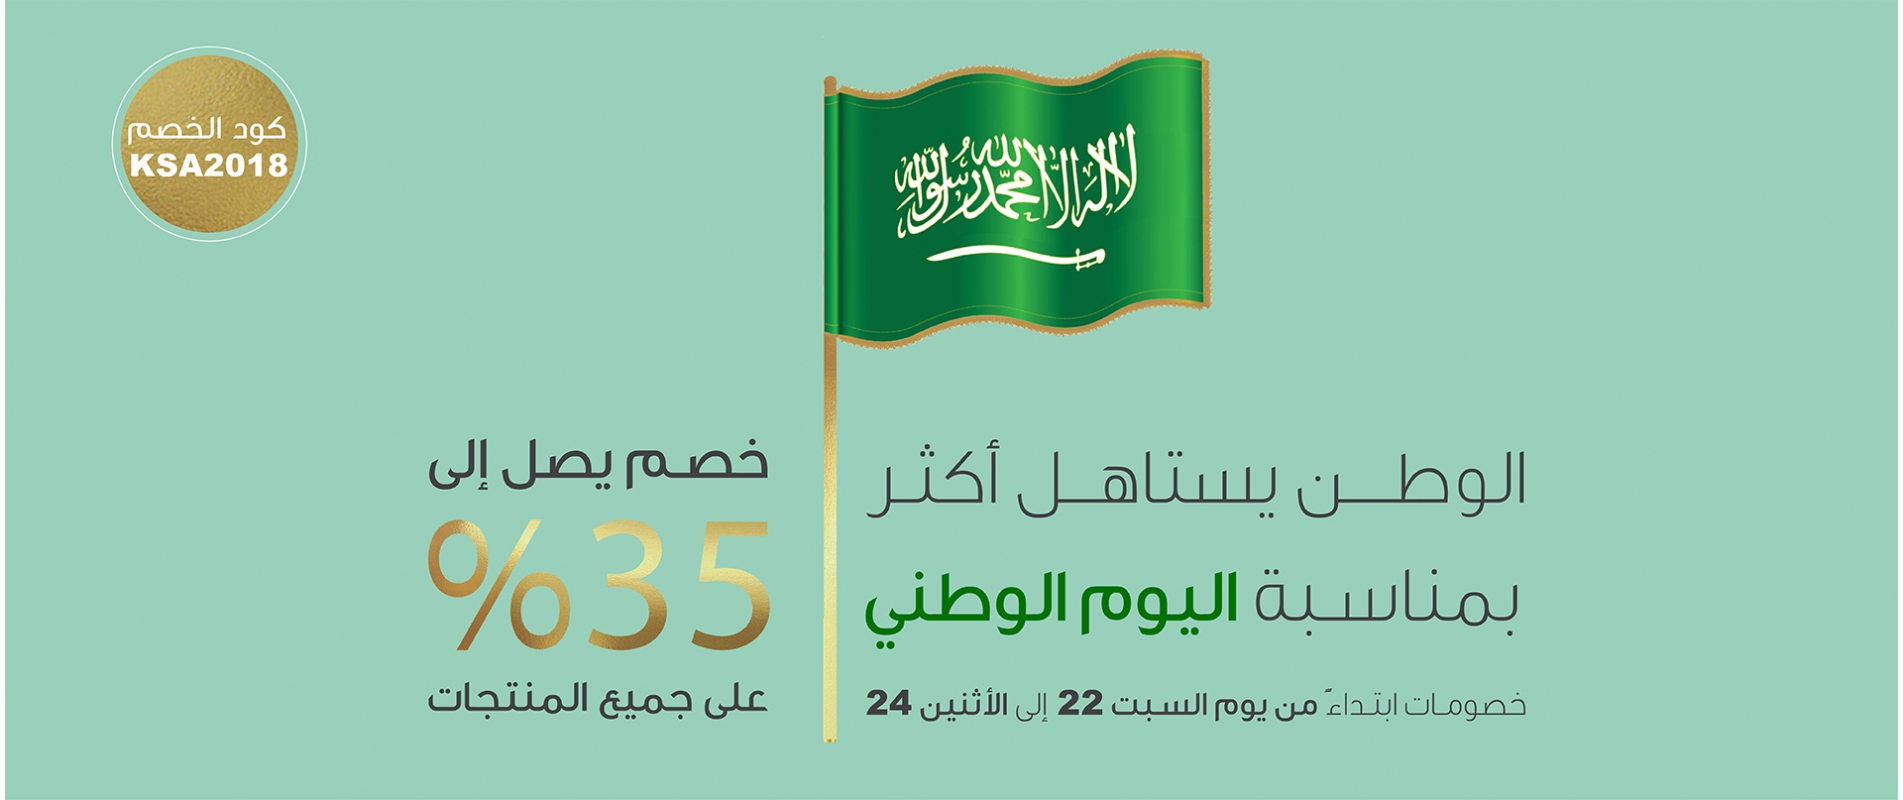 Saudi National Day 2018